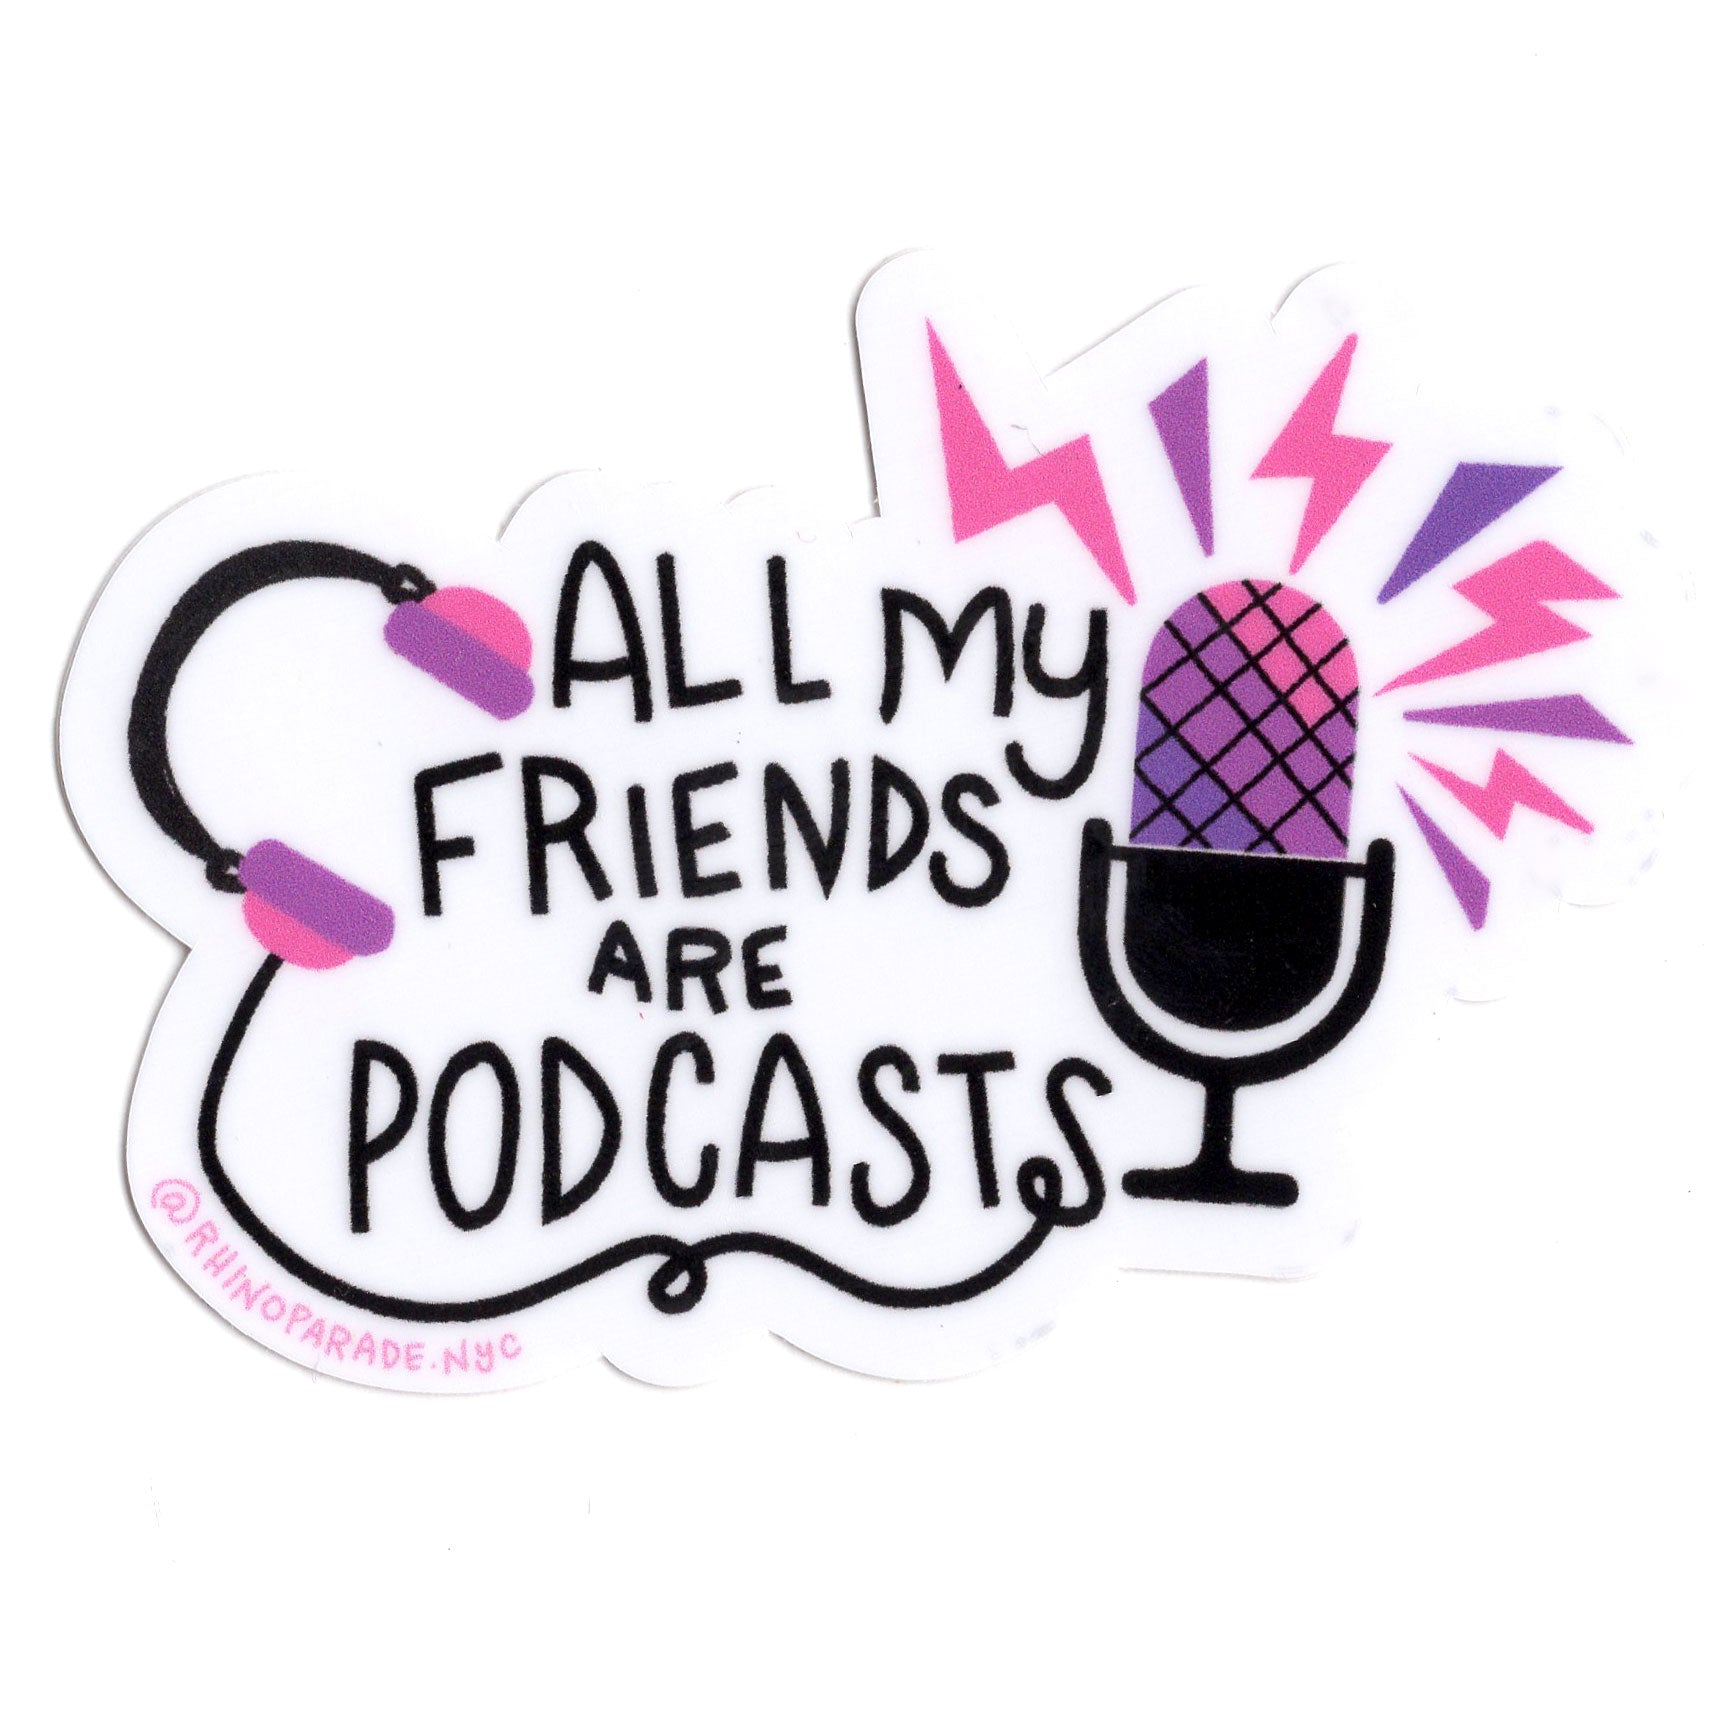 Podcast BFF Sticker